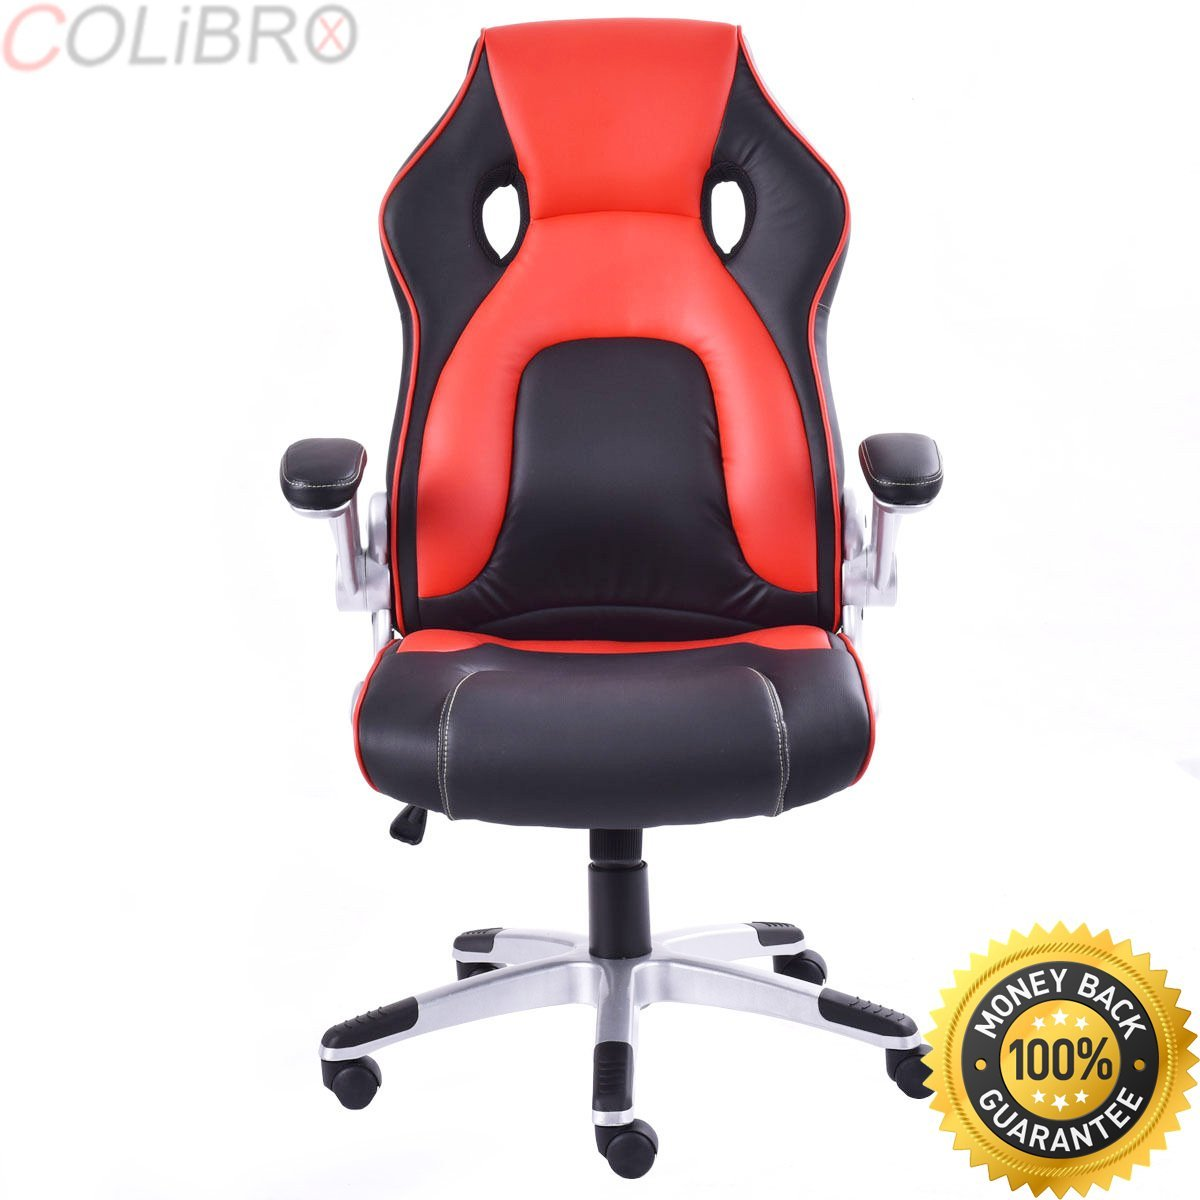 COLIBROX--PU Leather Executive Racing Style Bucket Seat Office Desk Chair Task Computer. leather executive racing style bucket seat chair. high back gaming chair executive swivel ergonomic chair.